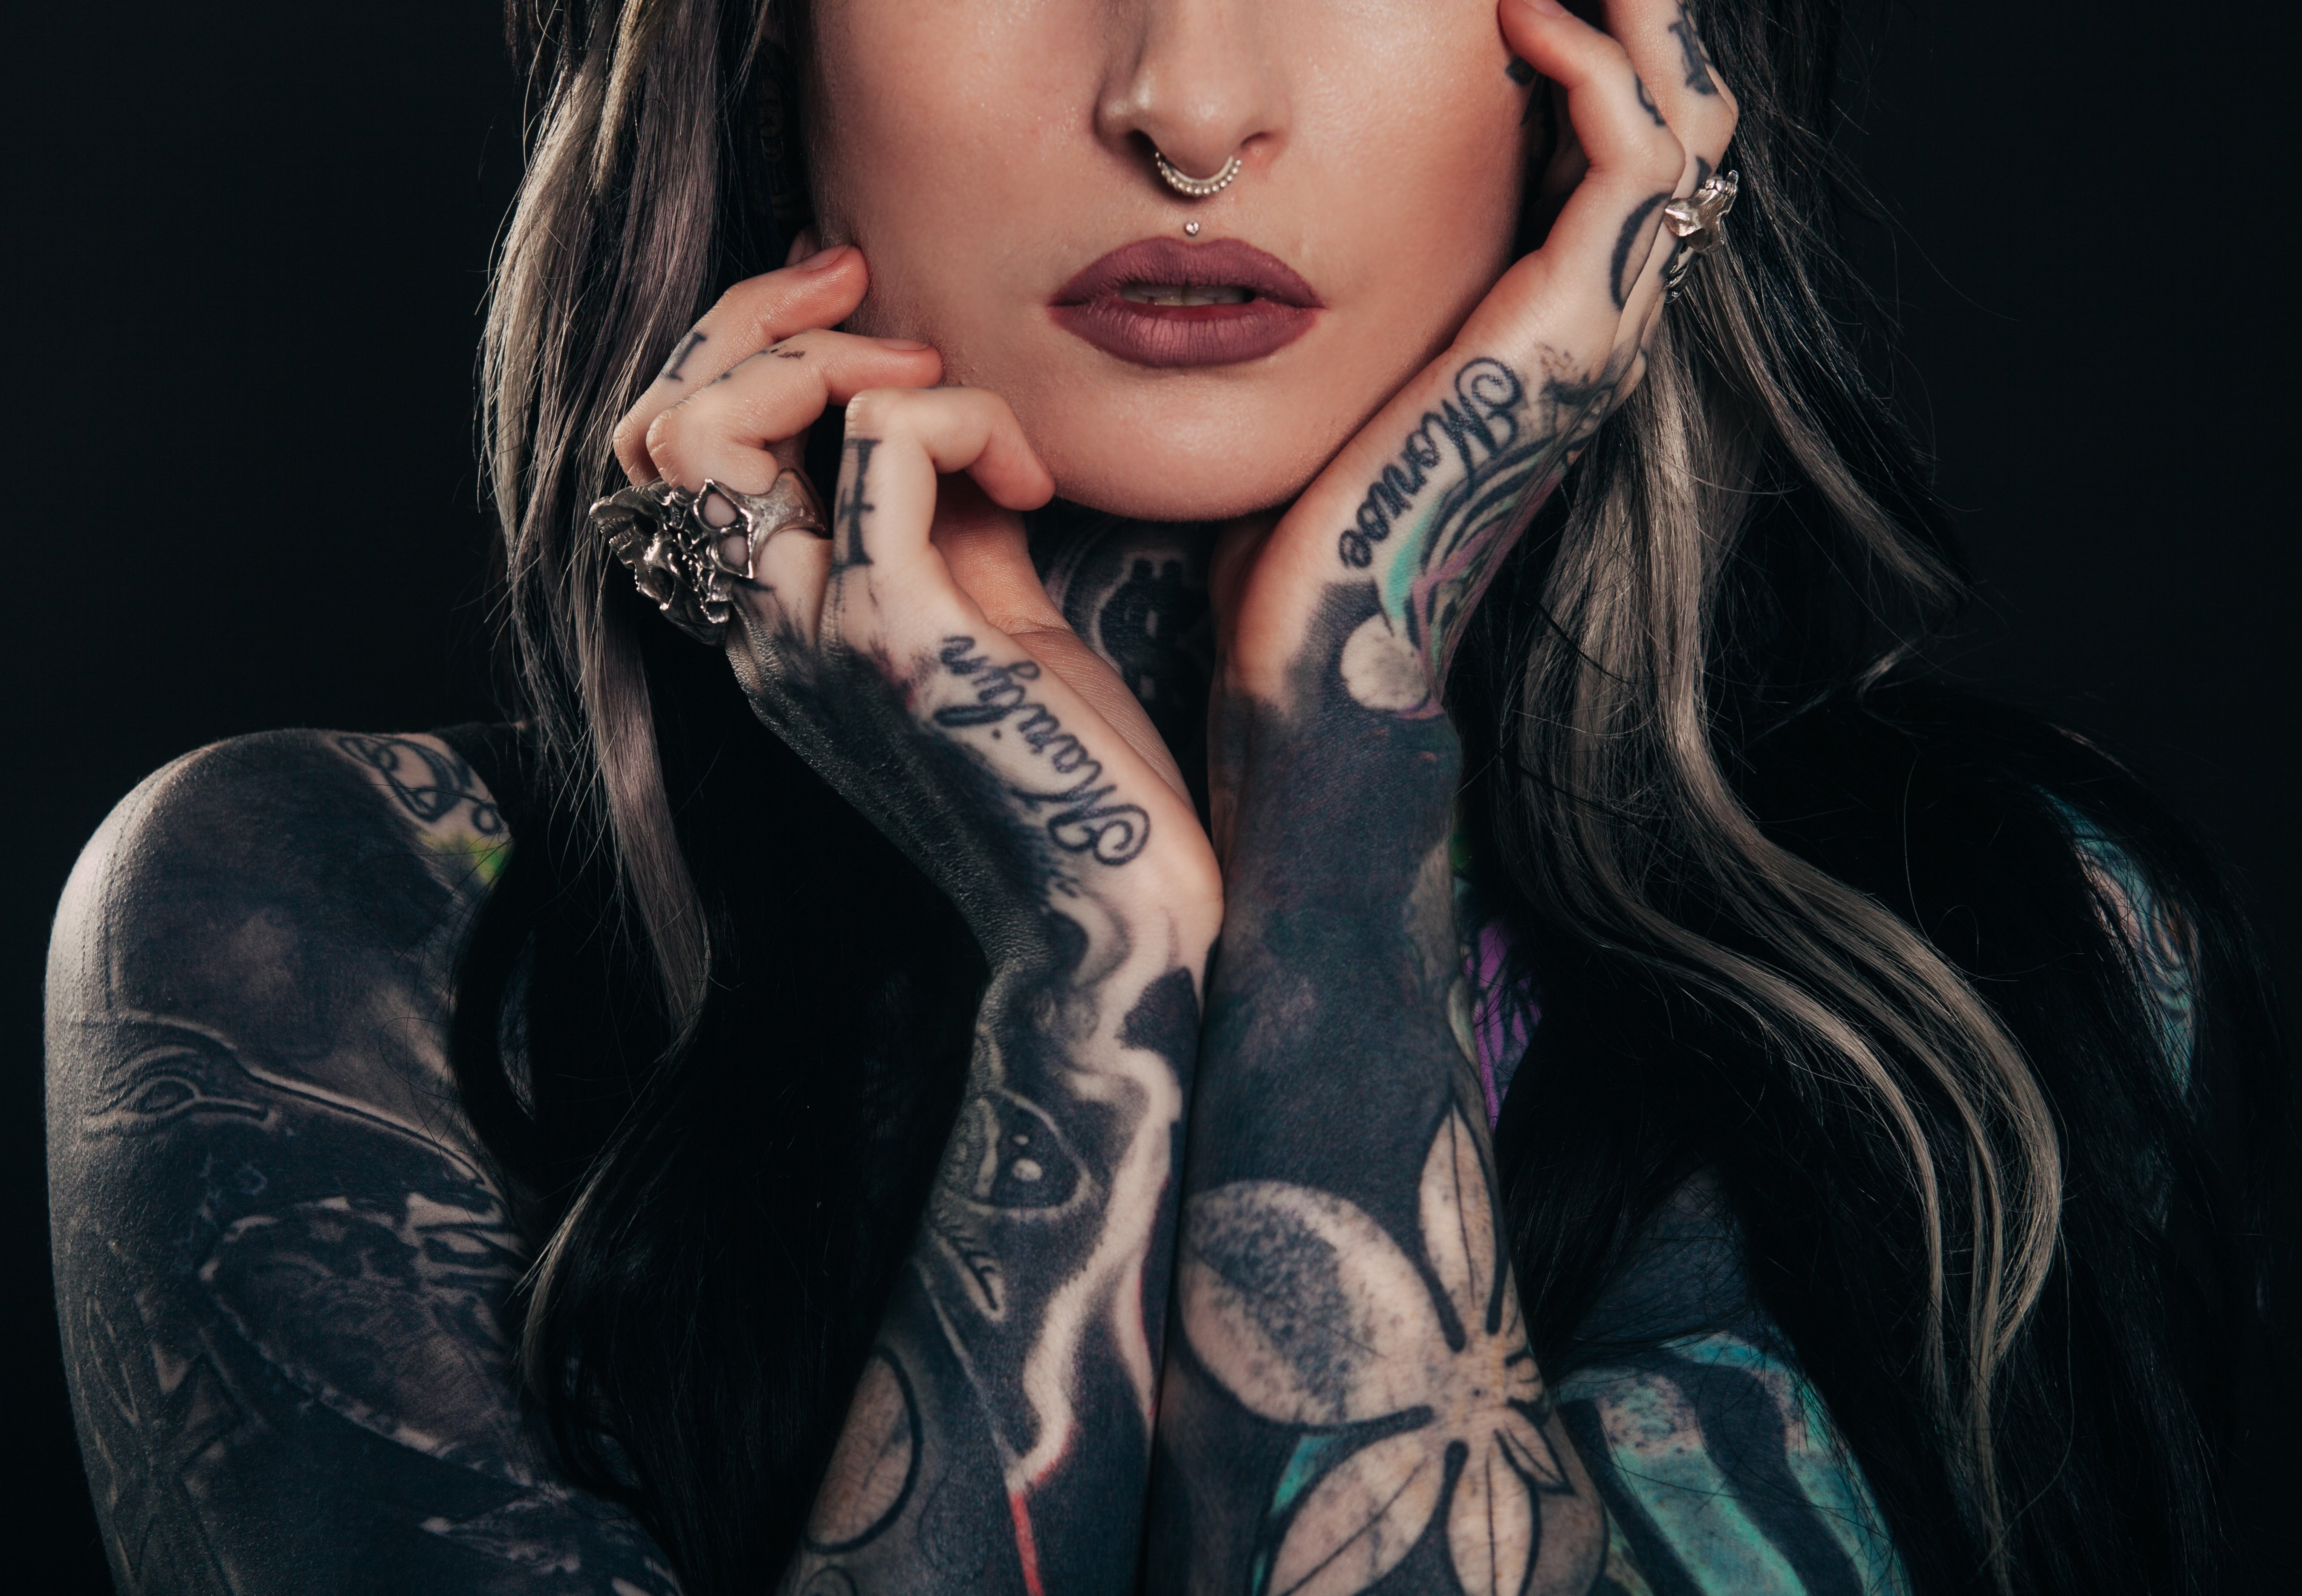 A girl with tattoos   Source: Unsplash.com